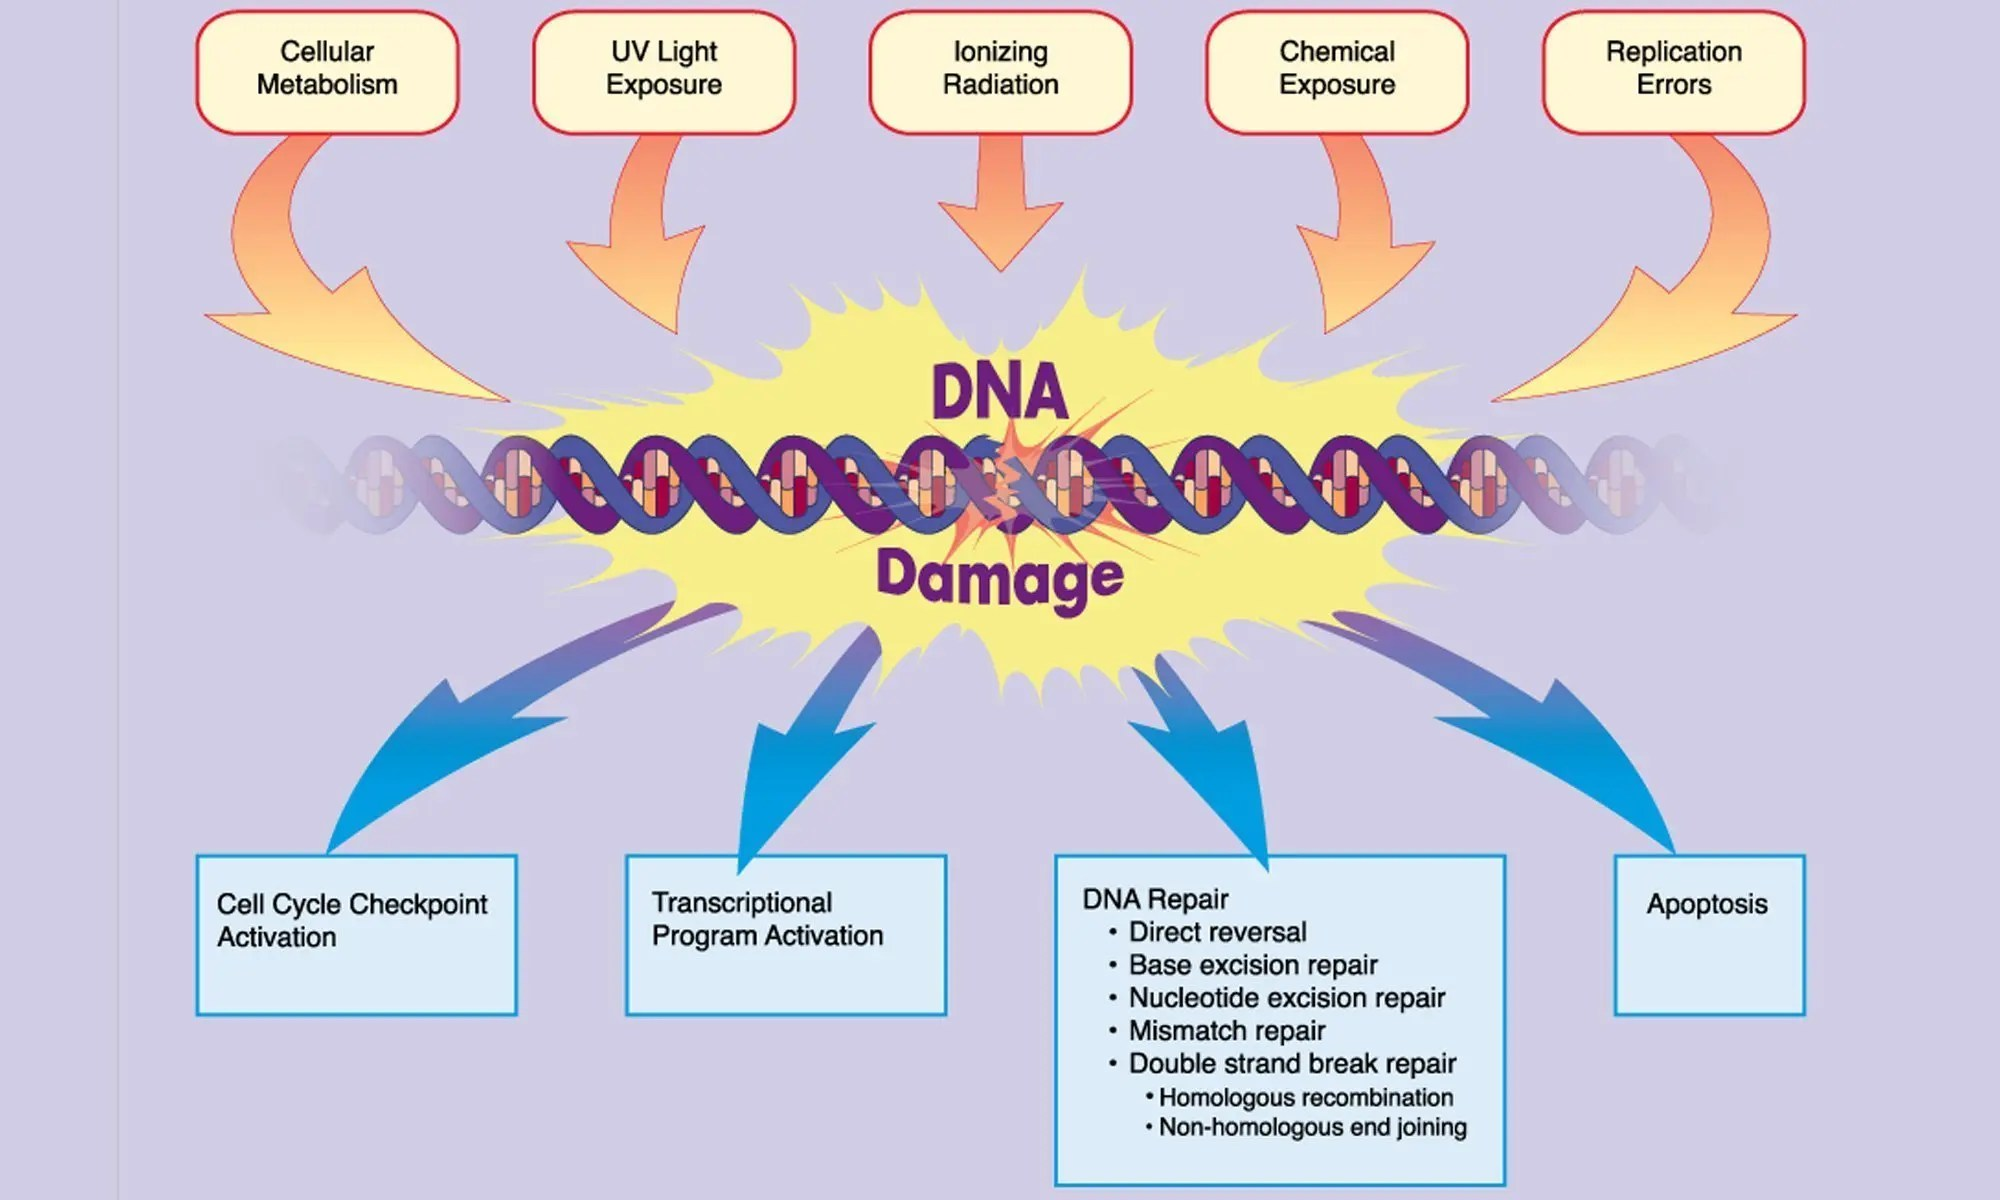 image of DNA repair